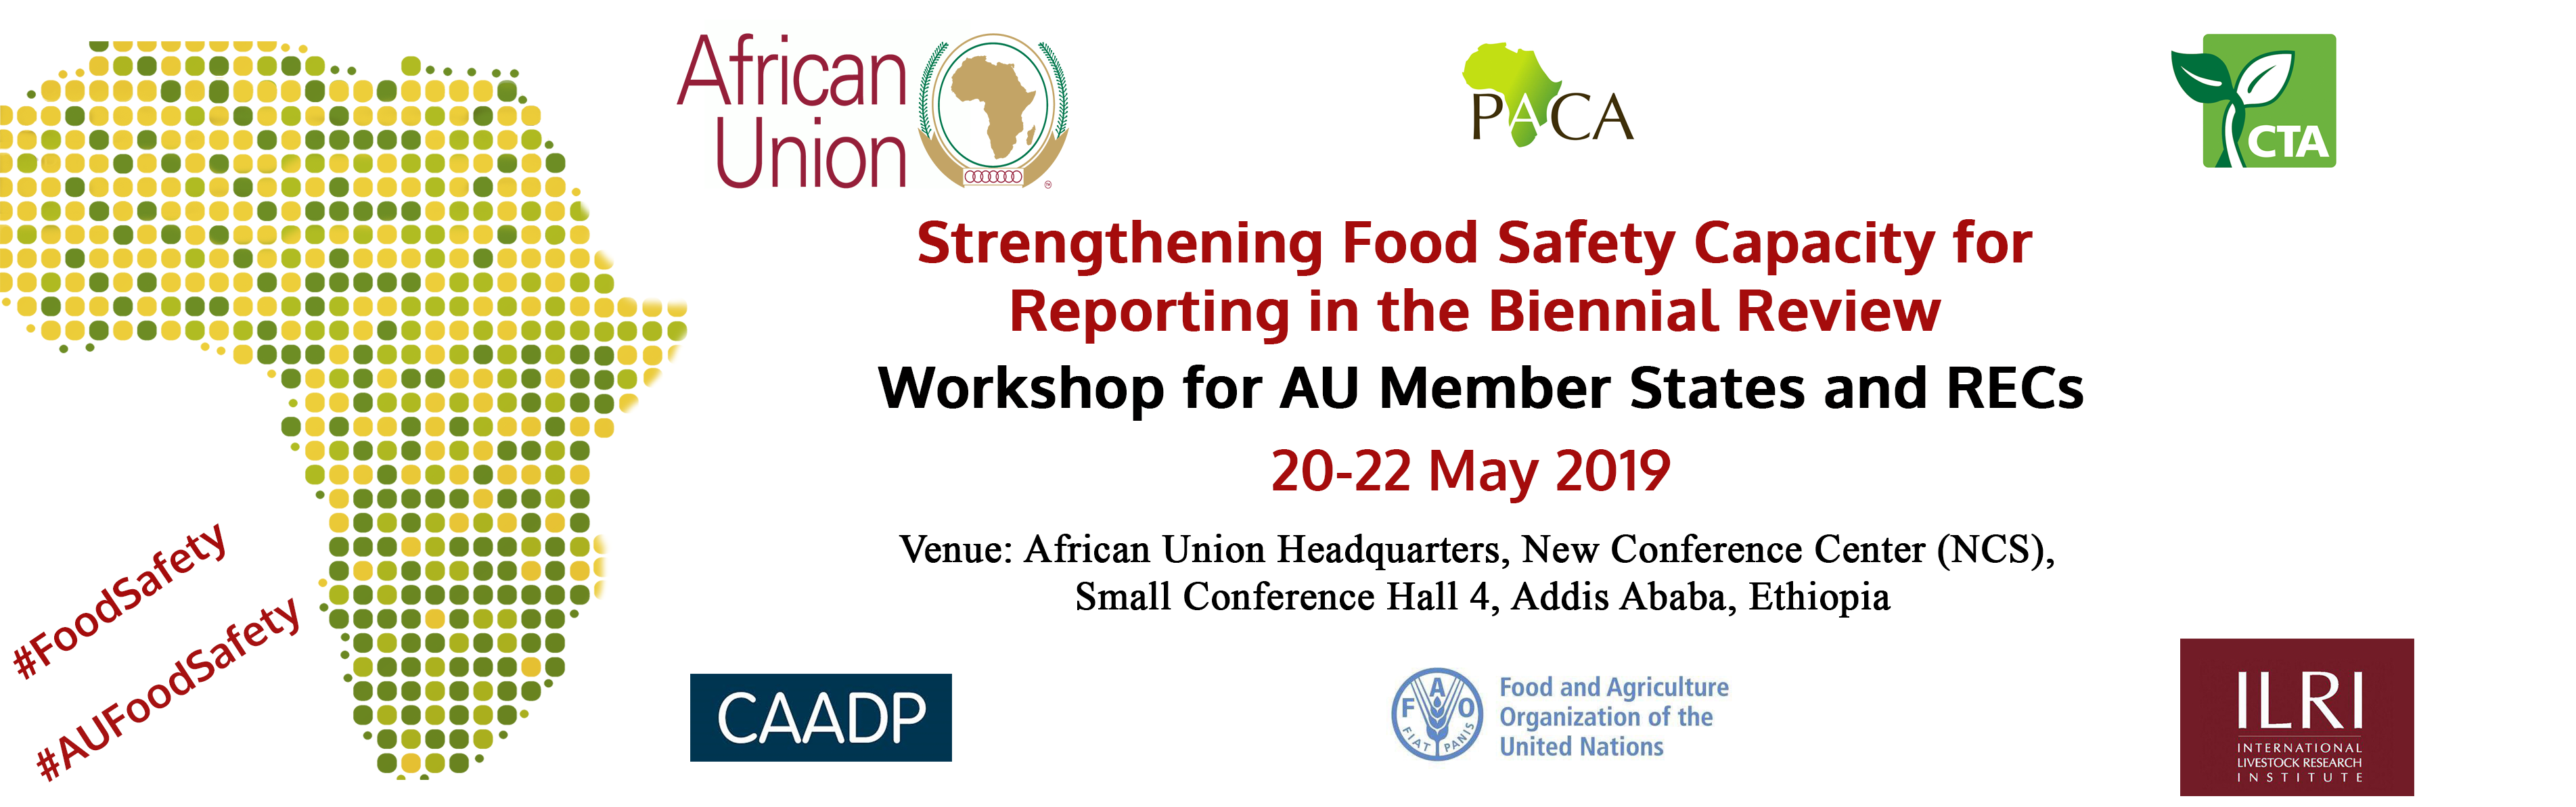 Workshop on strengthening food safety capacity for reporting in the biennial review